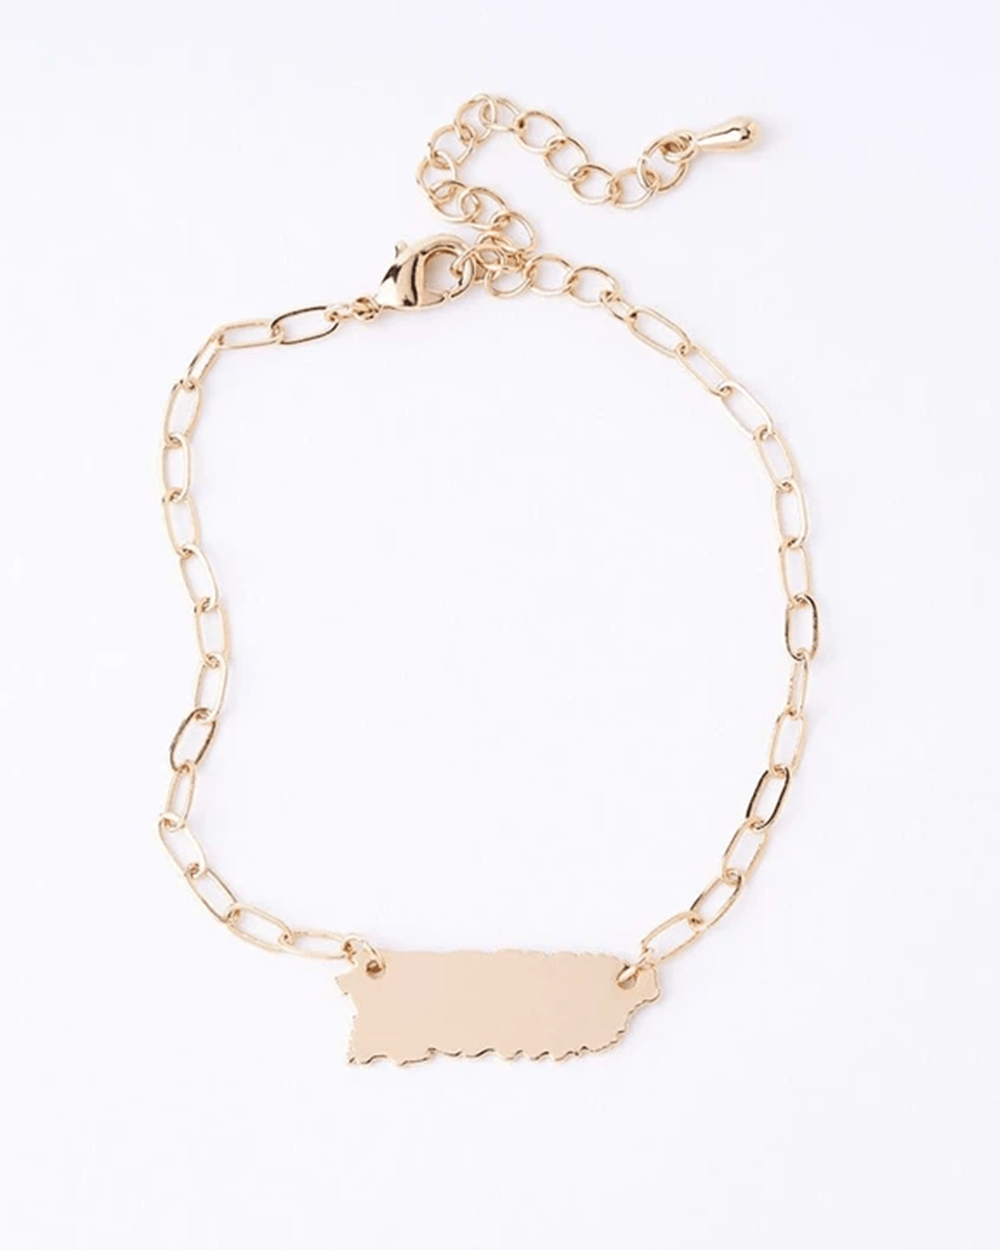 14K GOLD PLATED PUERTO RICO SQUARE CHAIN BRACELET